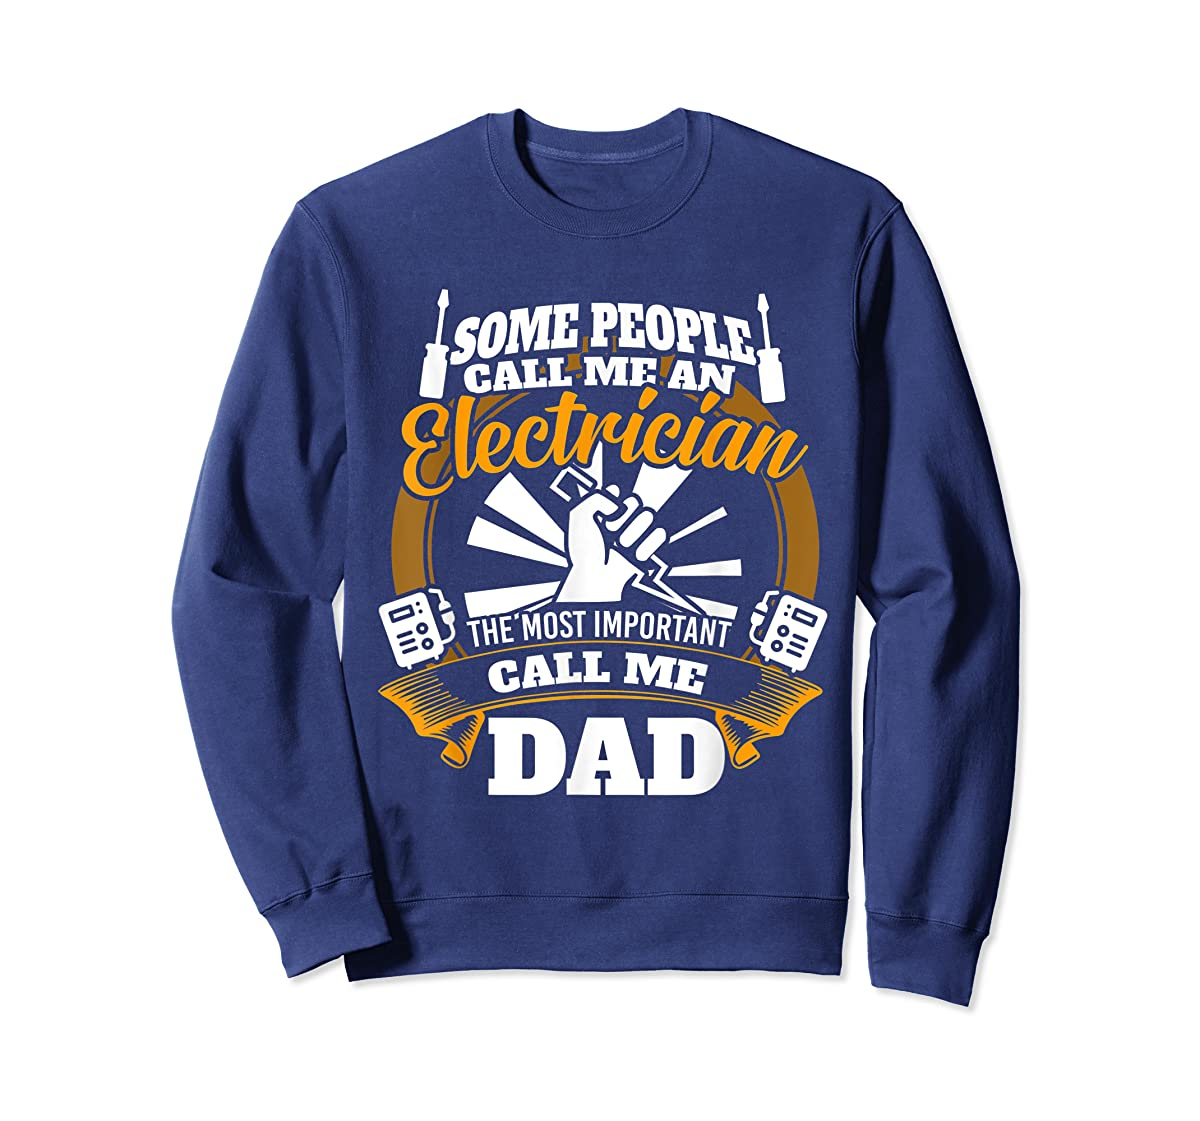 Mens Funny Electrician T-shirt for dad who loves technician gifts-Sweatshirt-Navy